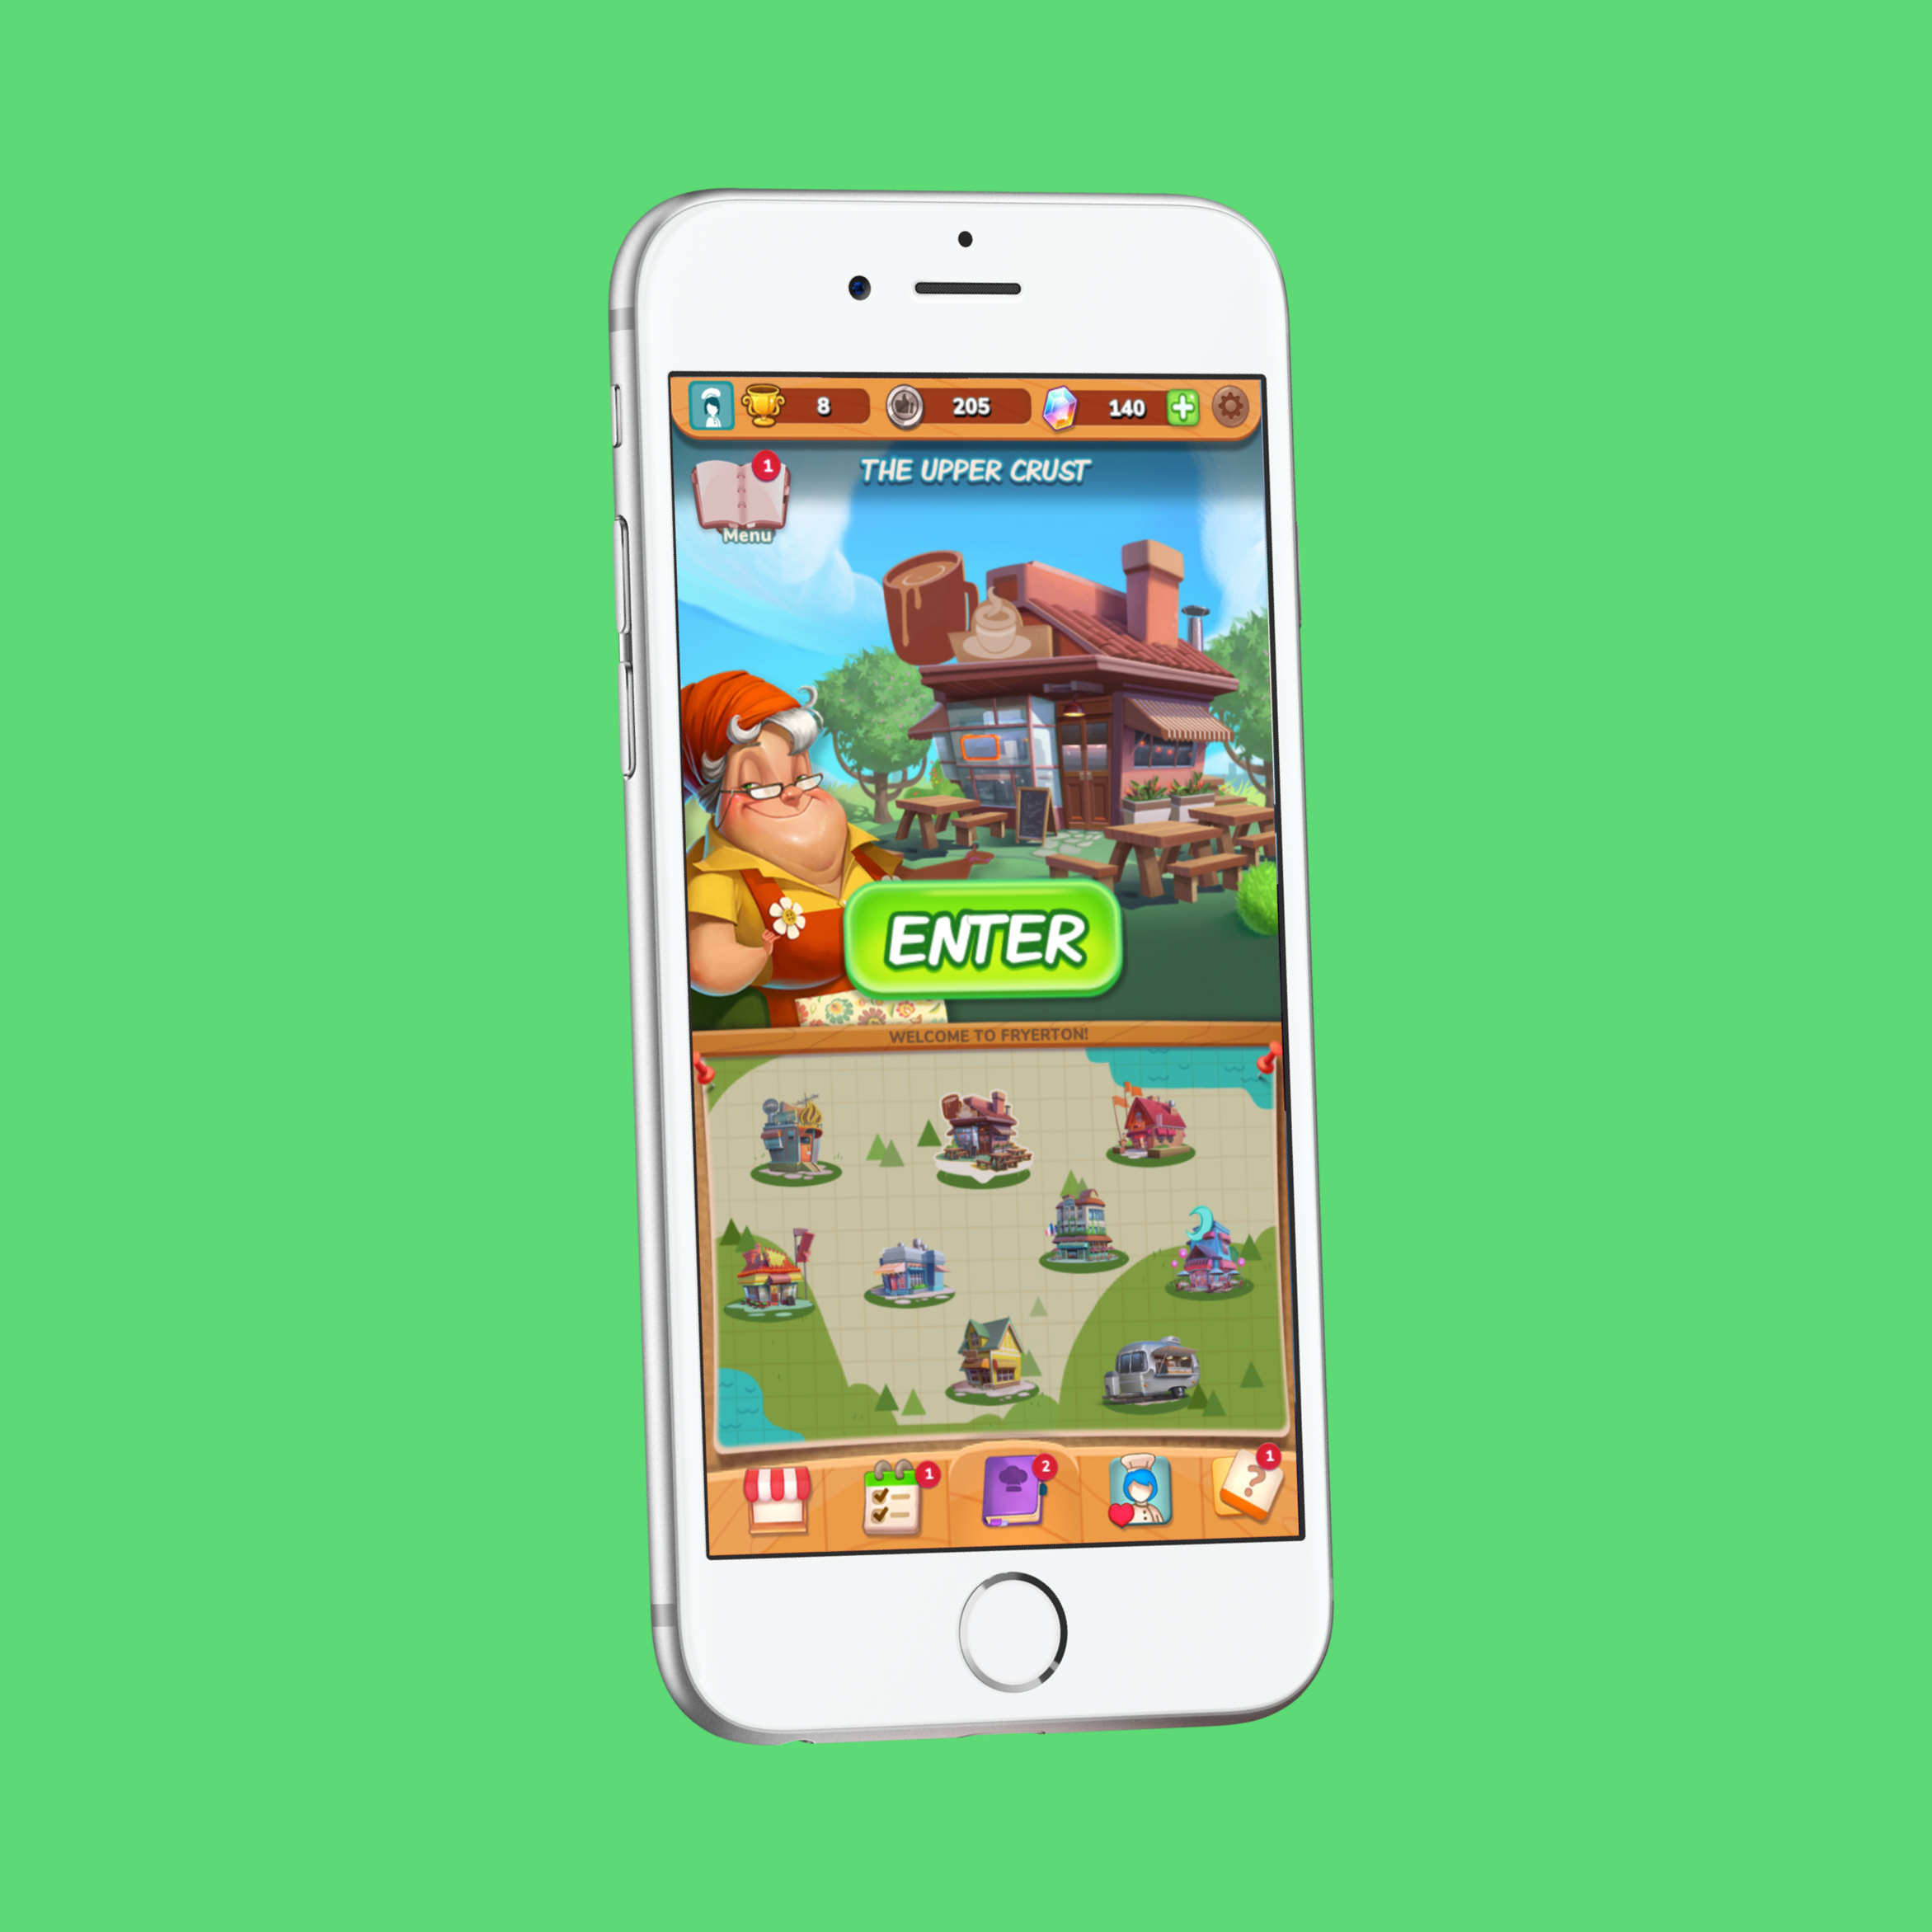 Let's Dish: Map - Interaction DesignMobile, Gaming (2018)Let's Dish is a cooking-themed mobile video game with a match-3 game mechanic. Think Candy Crush, but with gourmet food!